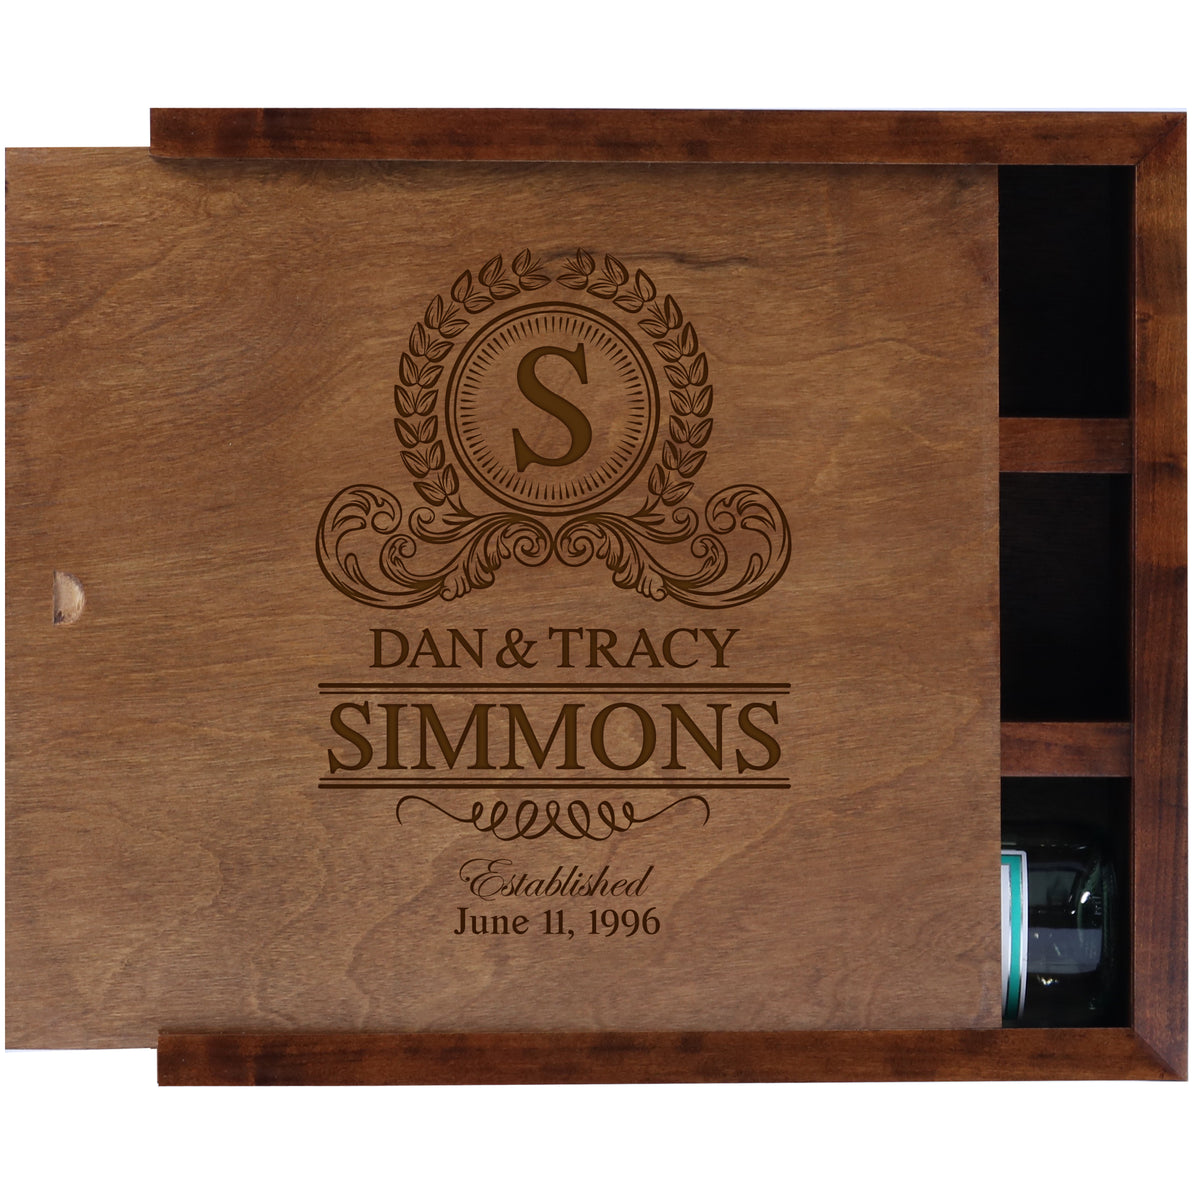 American Winekrafts Personalized Wooden Wine Storage Box - Wine Bottle Holder Gift For Home Wedding Anniversary Ceremony For Parents 13.75x4.50